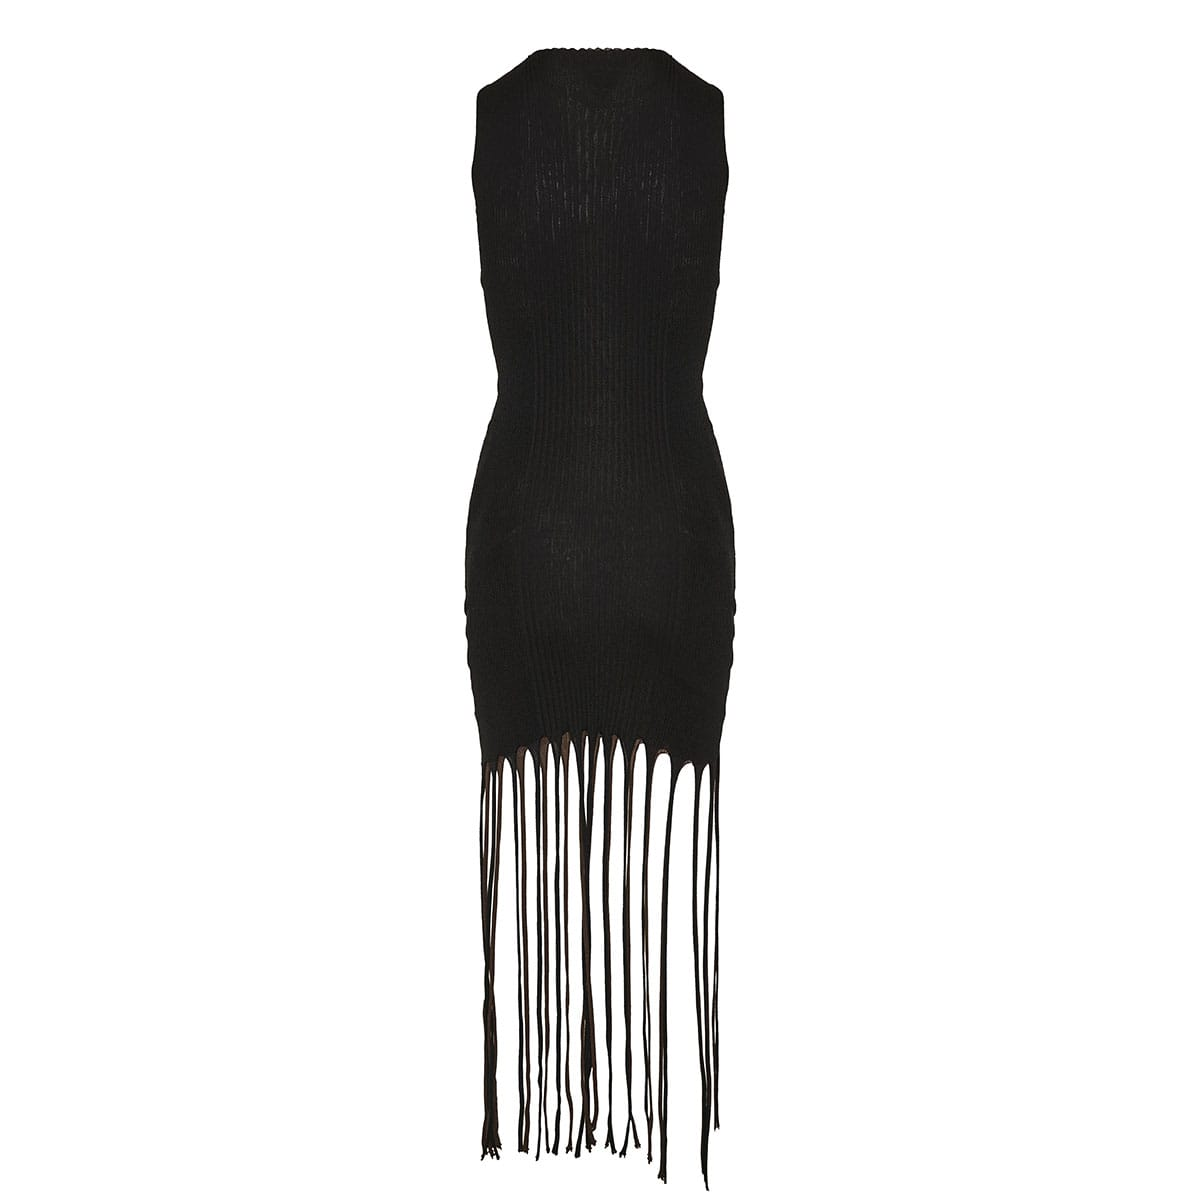 Twisted knitted top with fringes